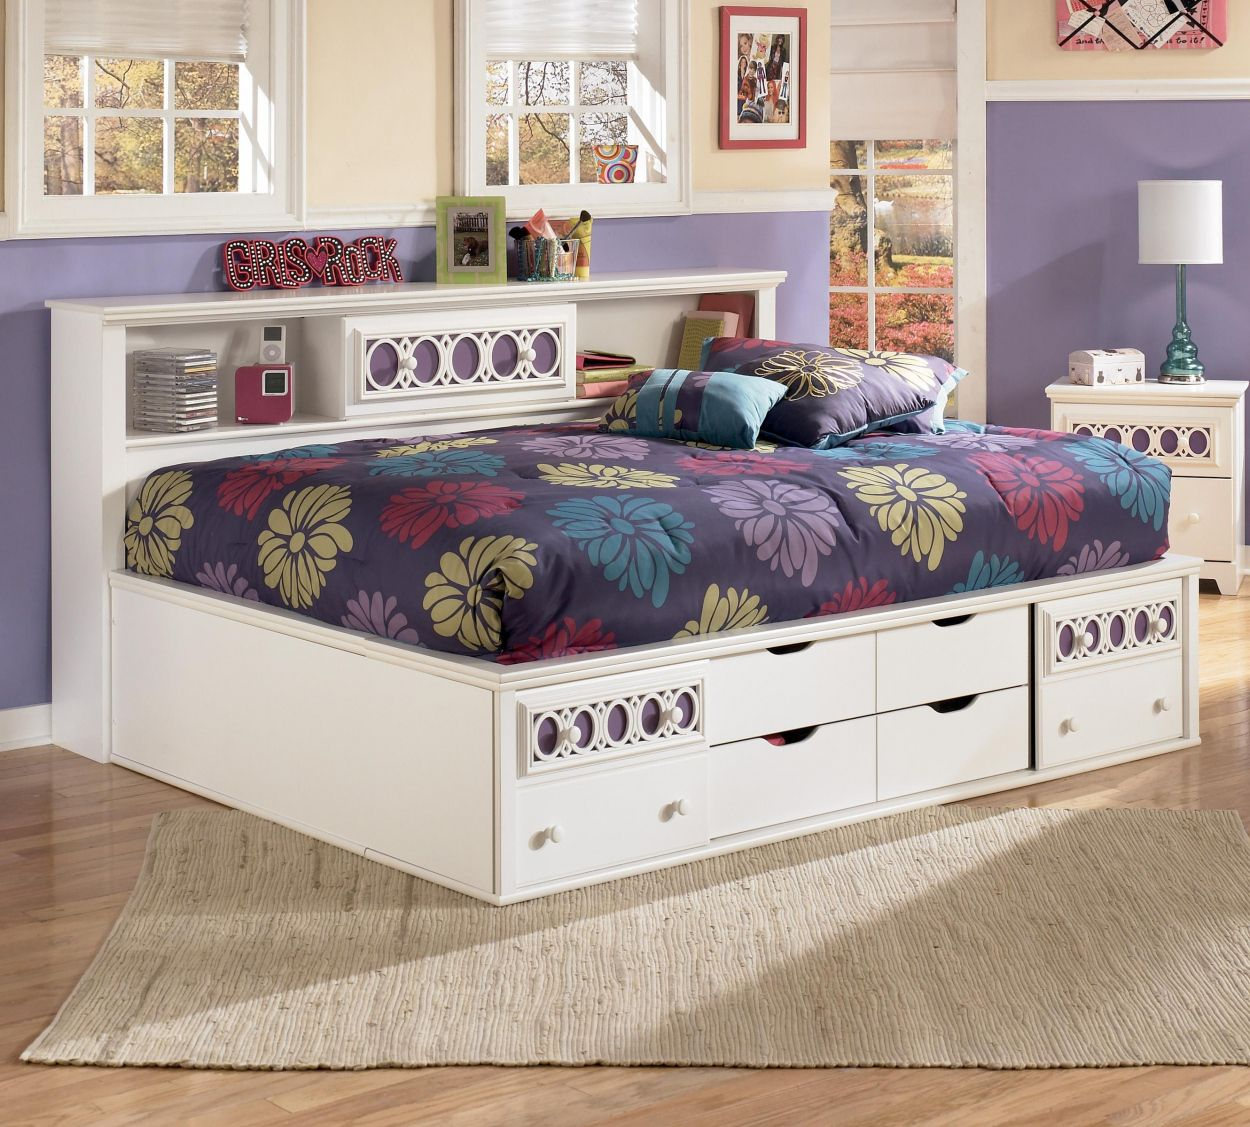 Youth Beds Ashley Furniture Best Quality Furniture Check More At